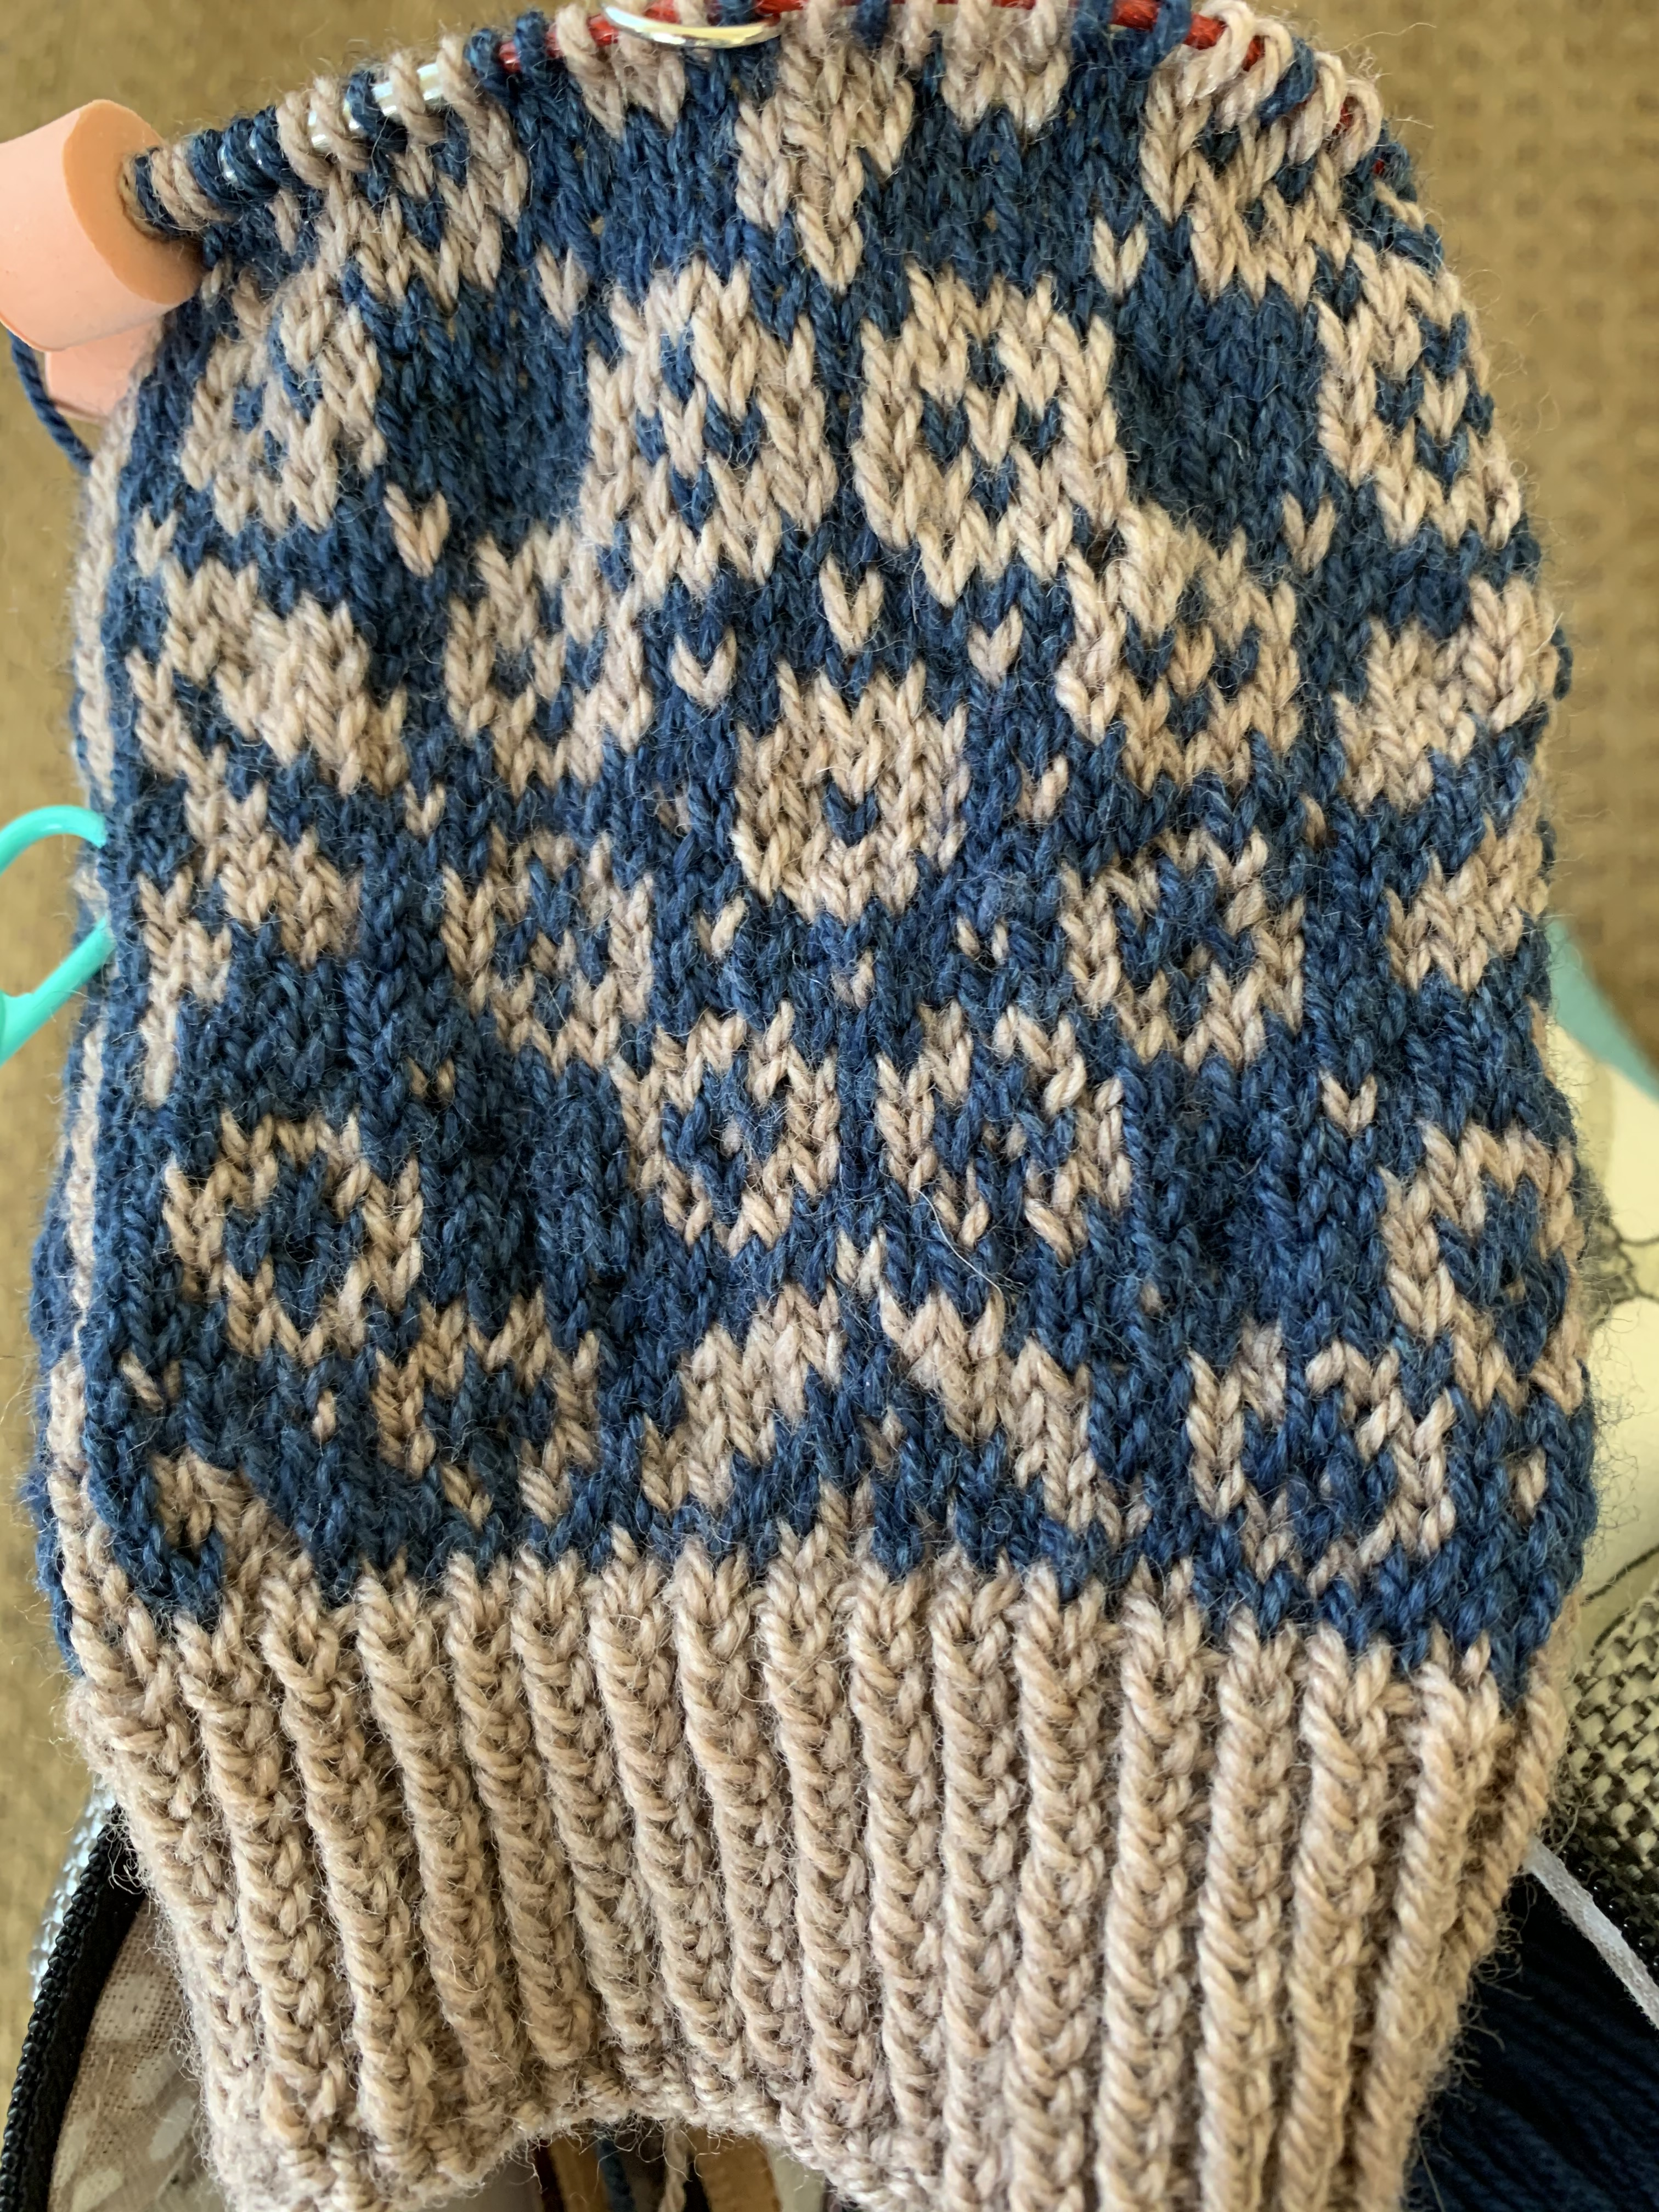 Colorwork flowers on the Wild Angelica socks knitting pattern showing color dominence.